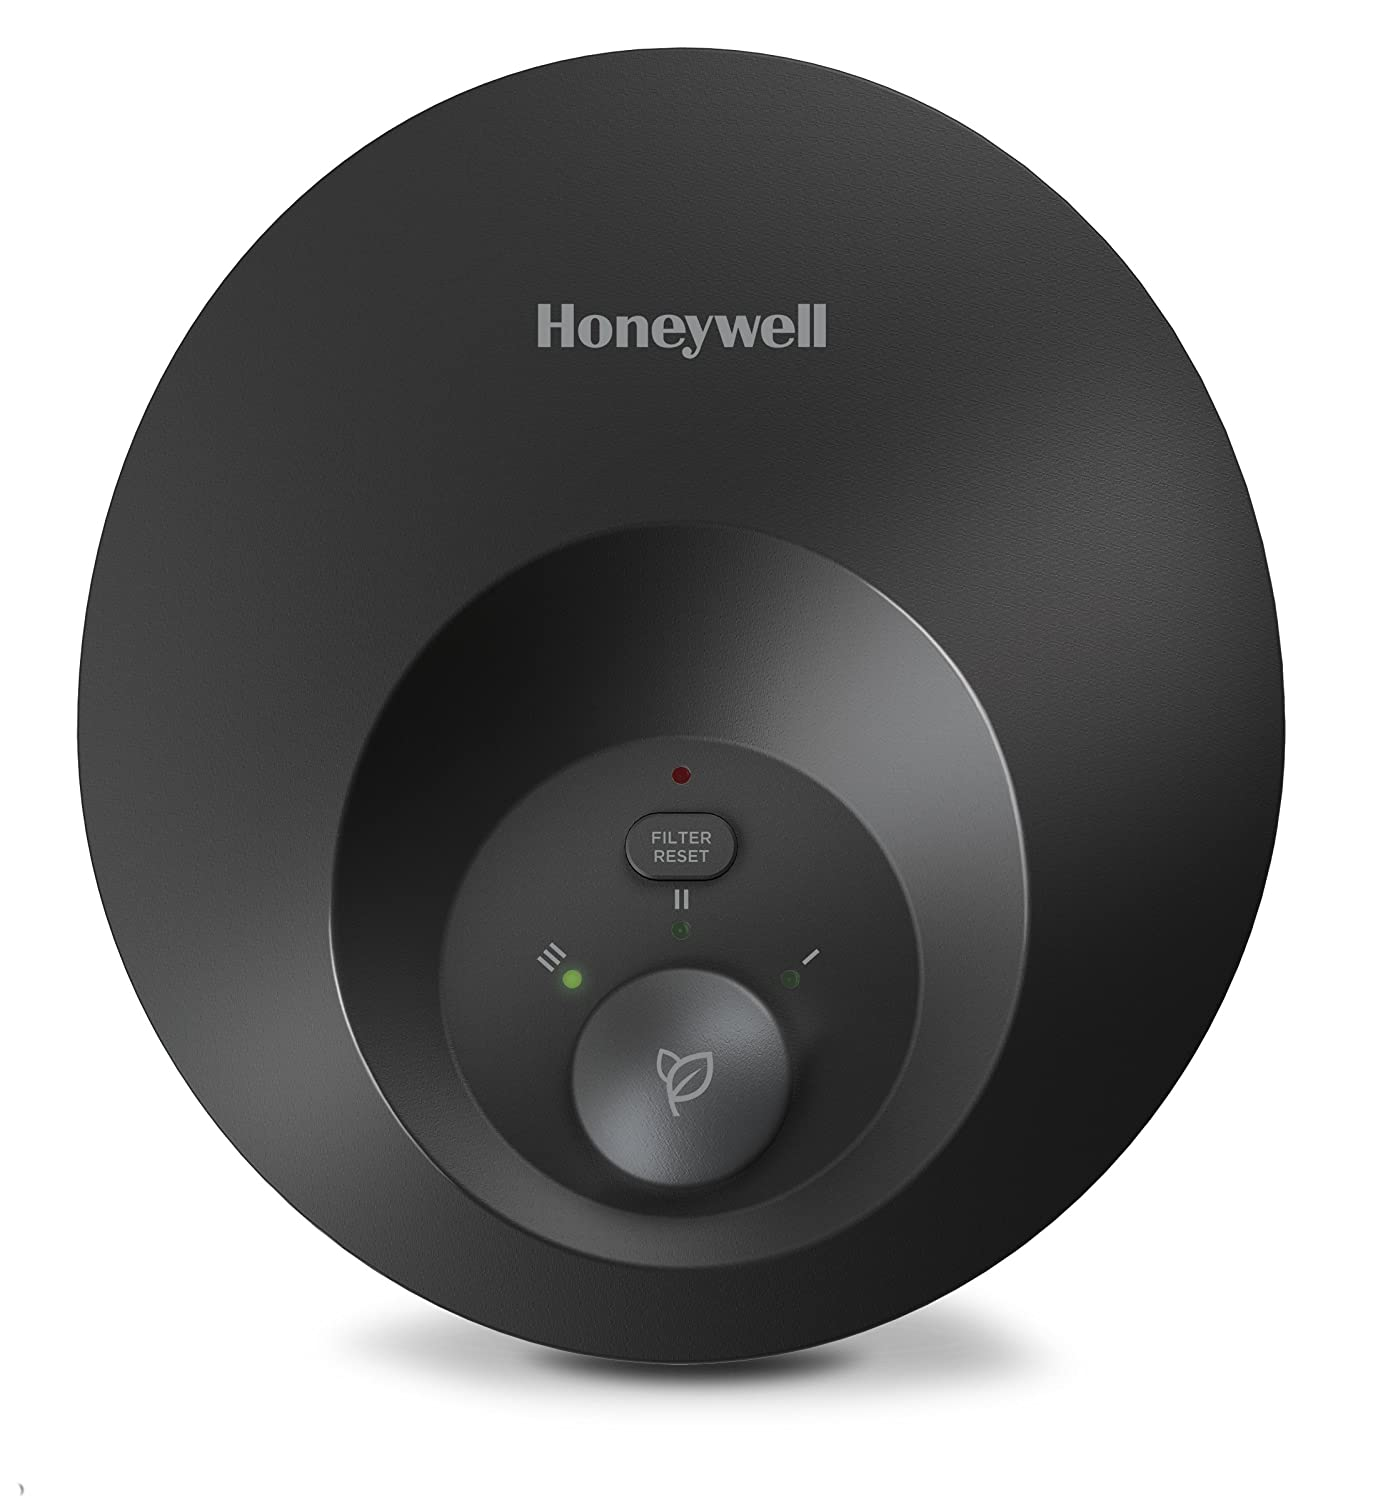 honeywell hpa030b review